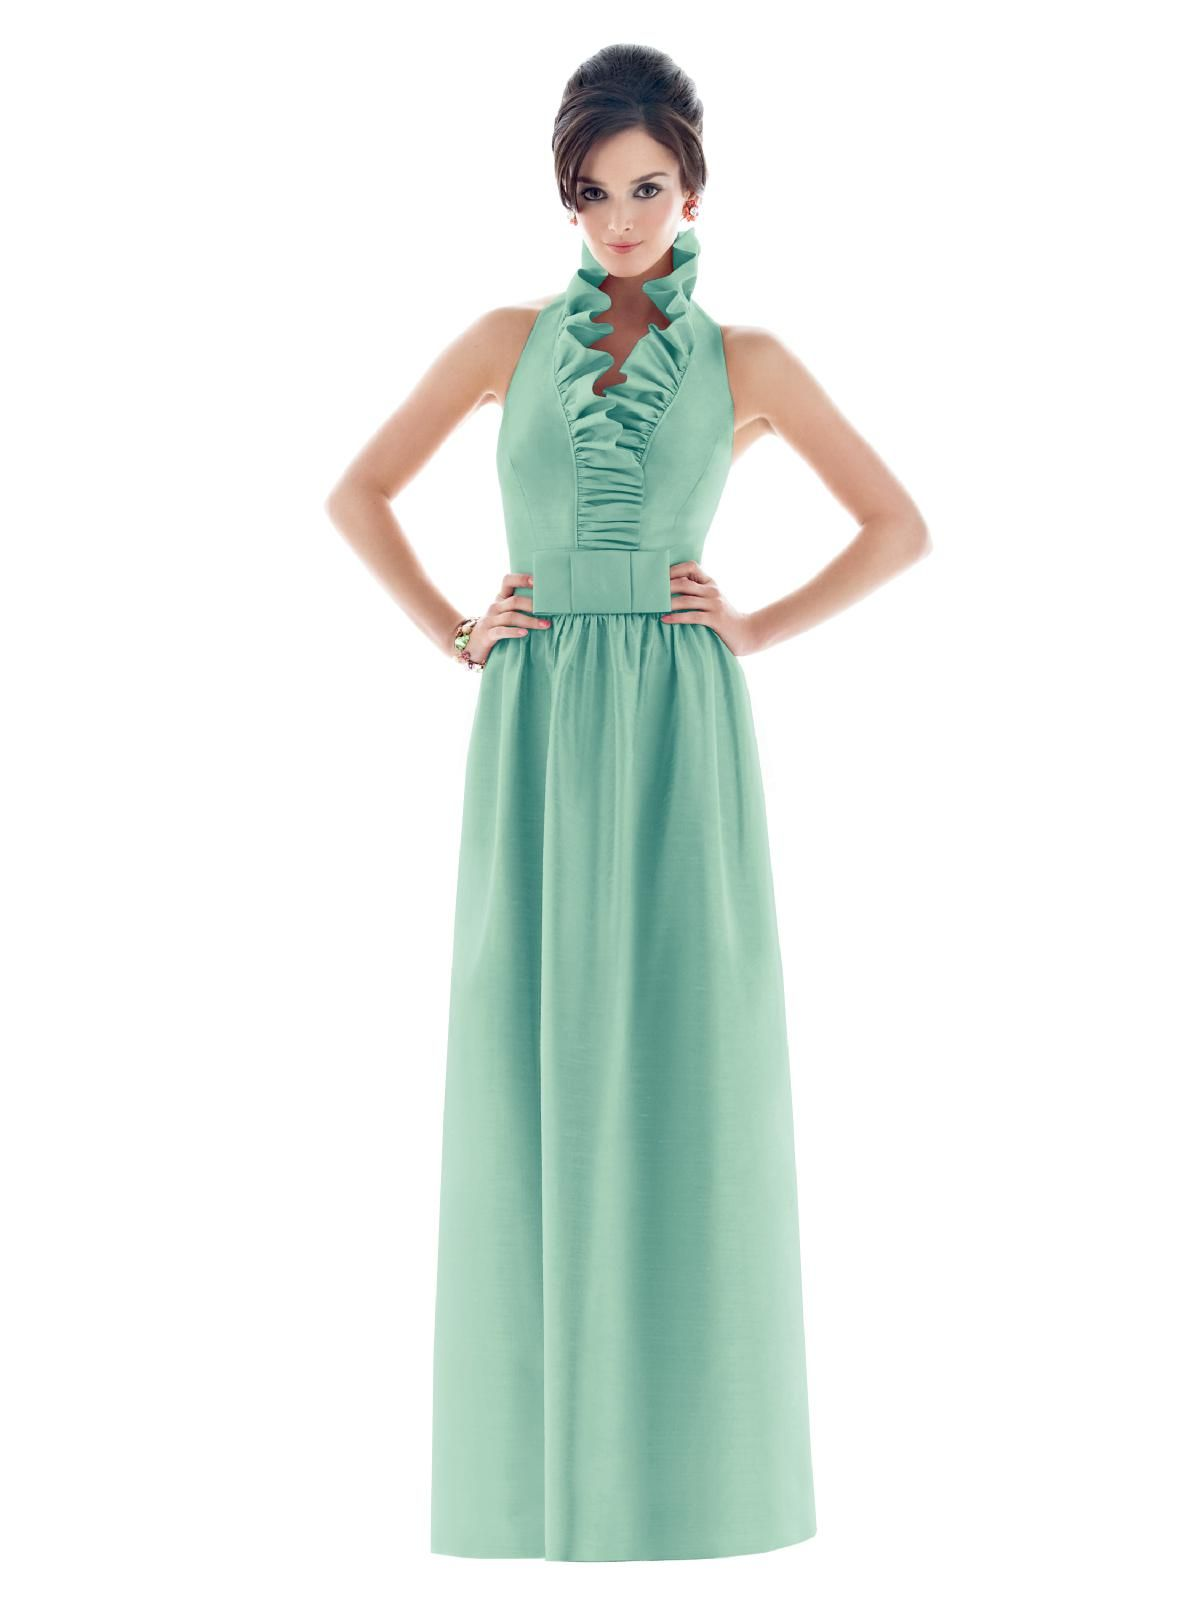 Madre wedding ideas pinterest alfred sung bridesmaid the alfred sung bridesmaid collection offers fresh contemporary bridesmaid dresses while keeping your budget in mind ombrellifo Image collections